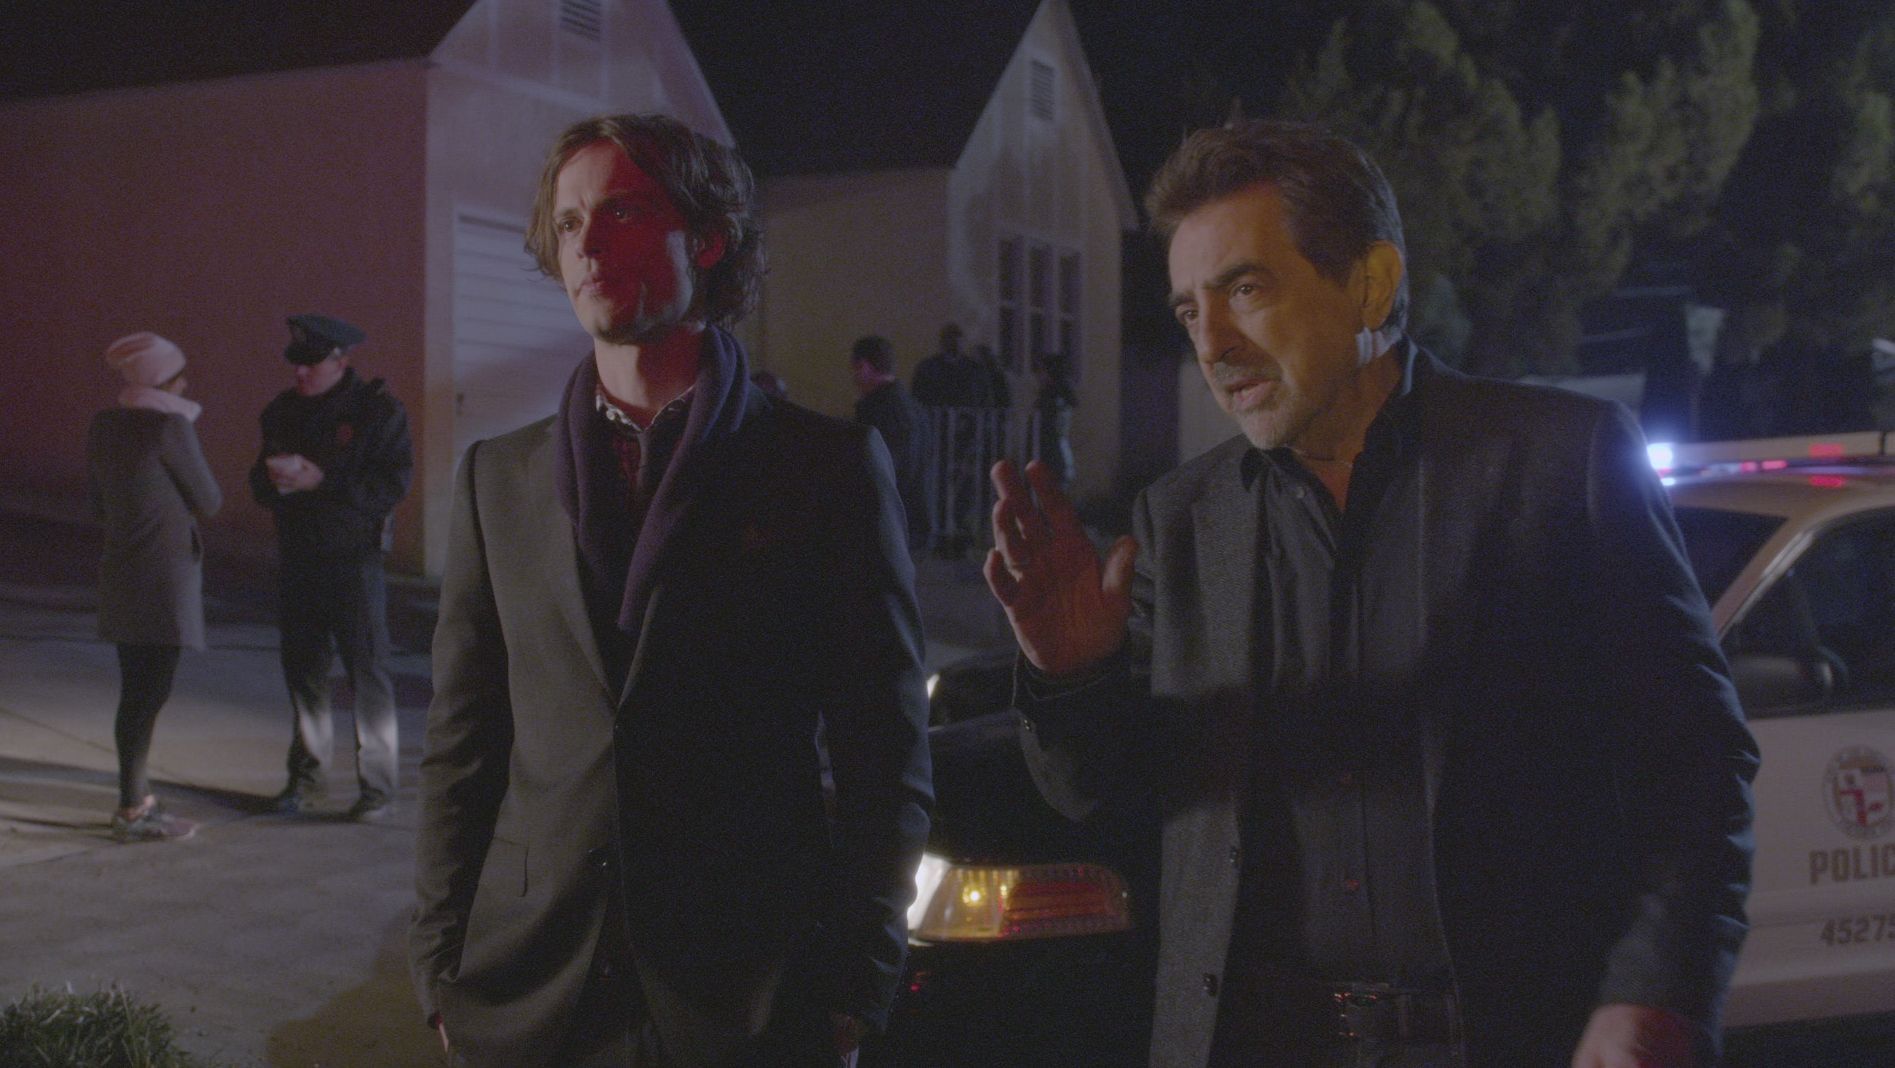 Reid and Rossi arrive on the scene.